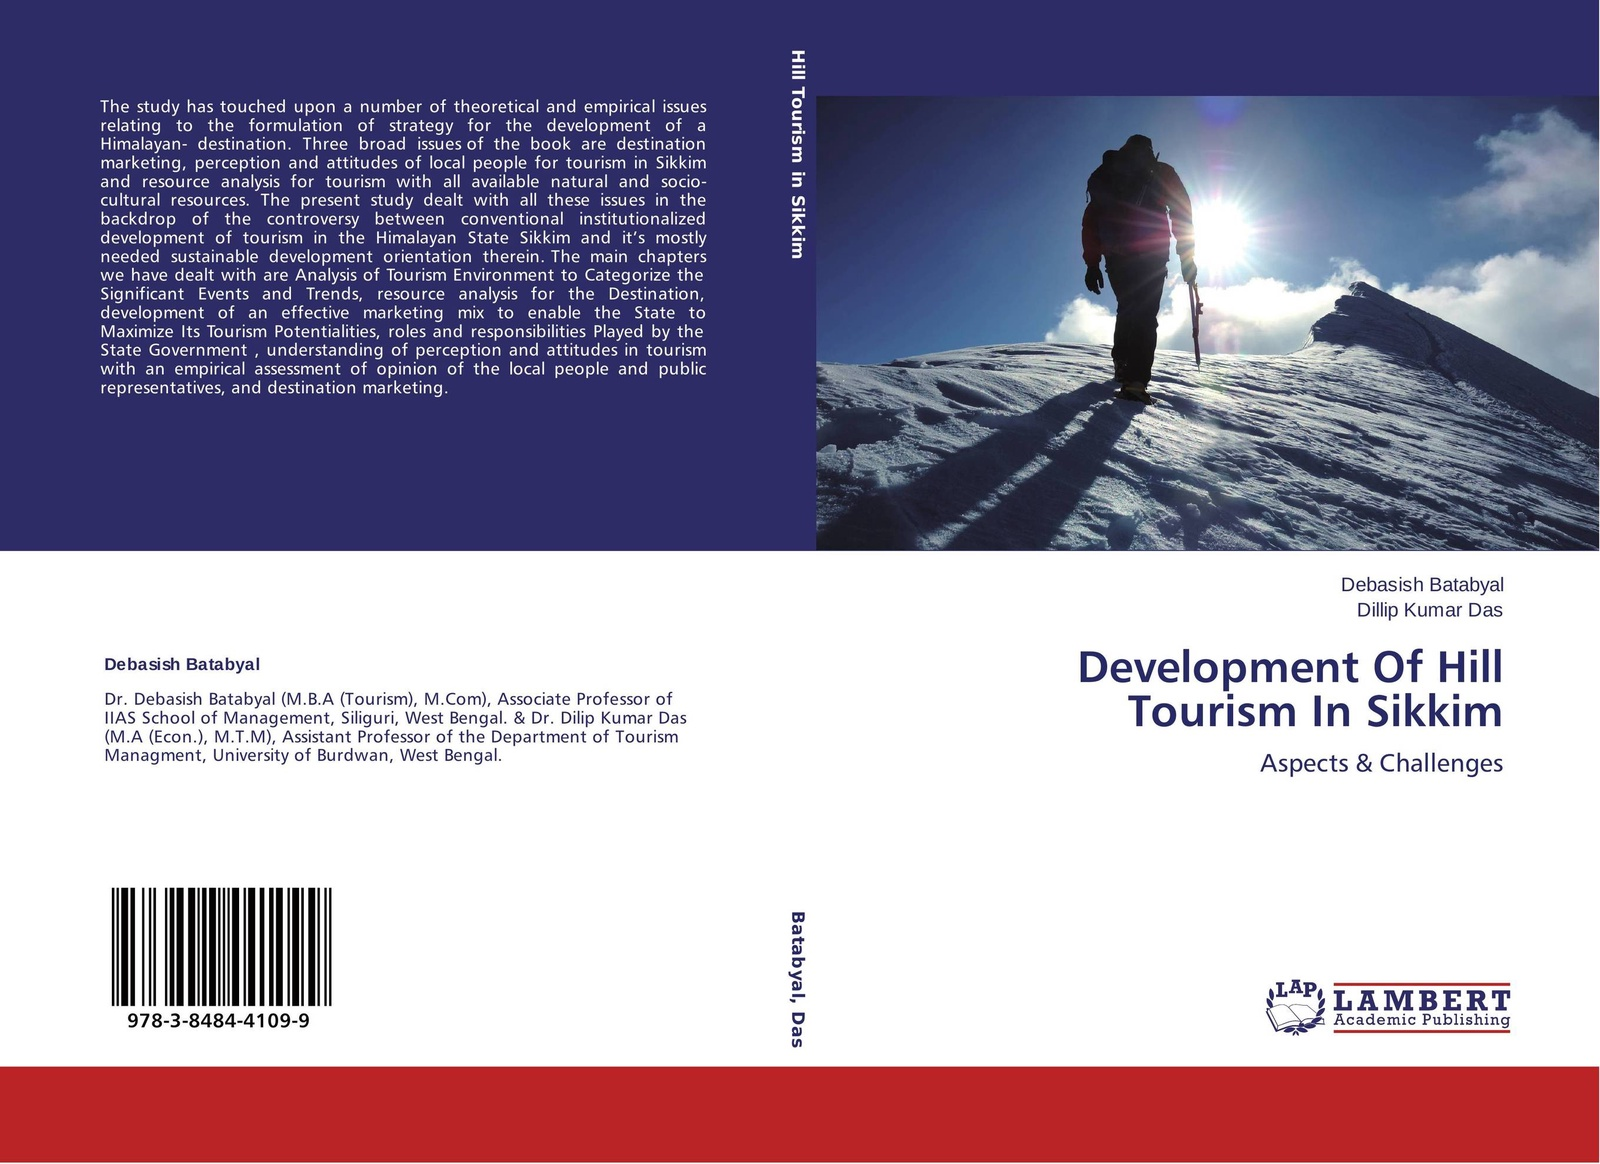 Debasish Batabyal and Dillip Kumar Das Development Of Hill Tourism In Sikkim jorinda ballering a tourism potential analysis of lundu district in malaysian borneo